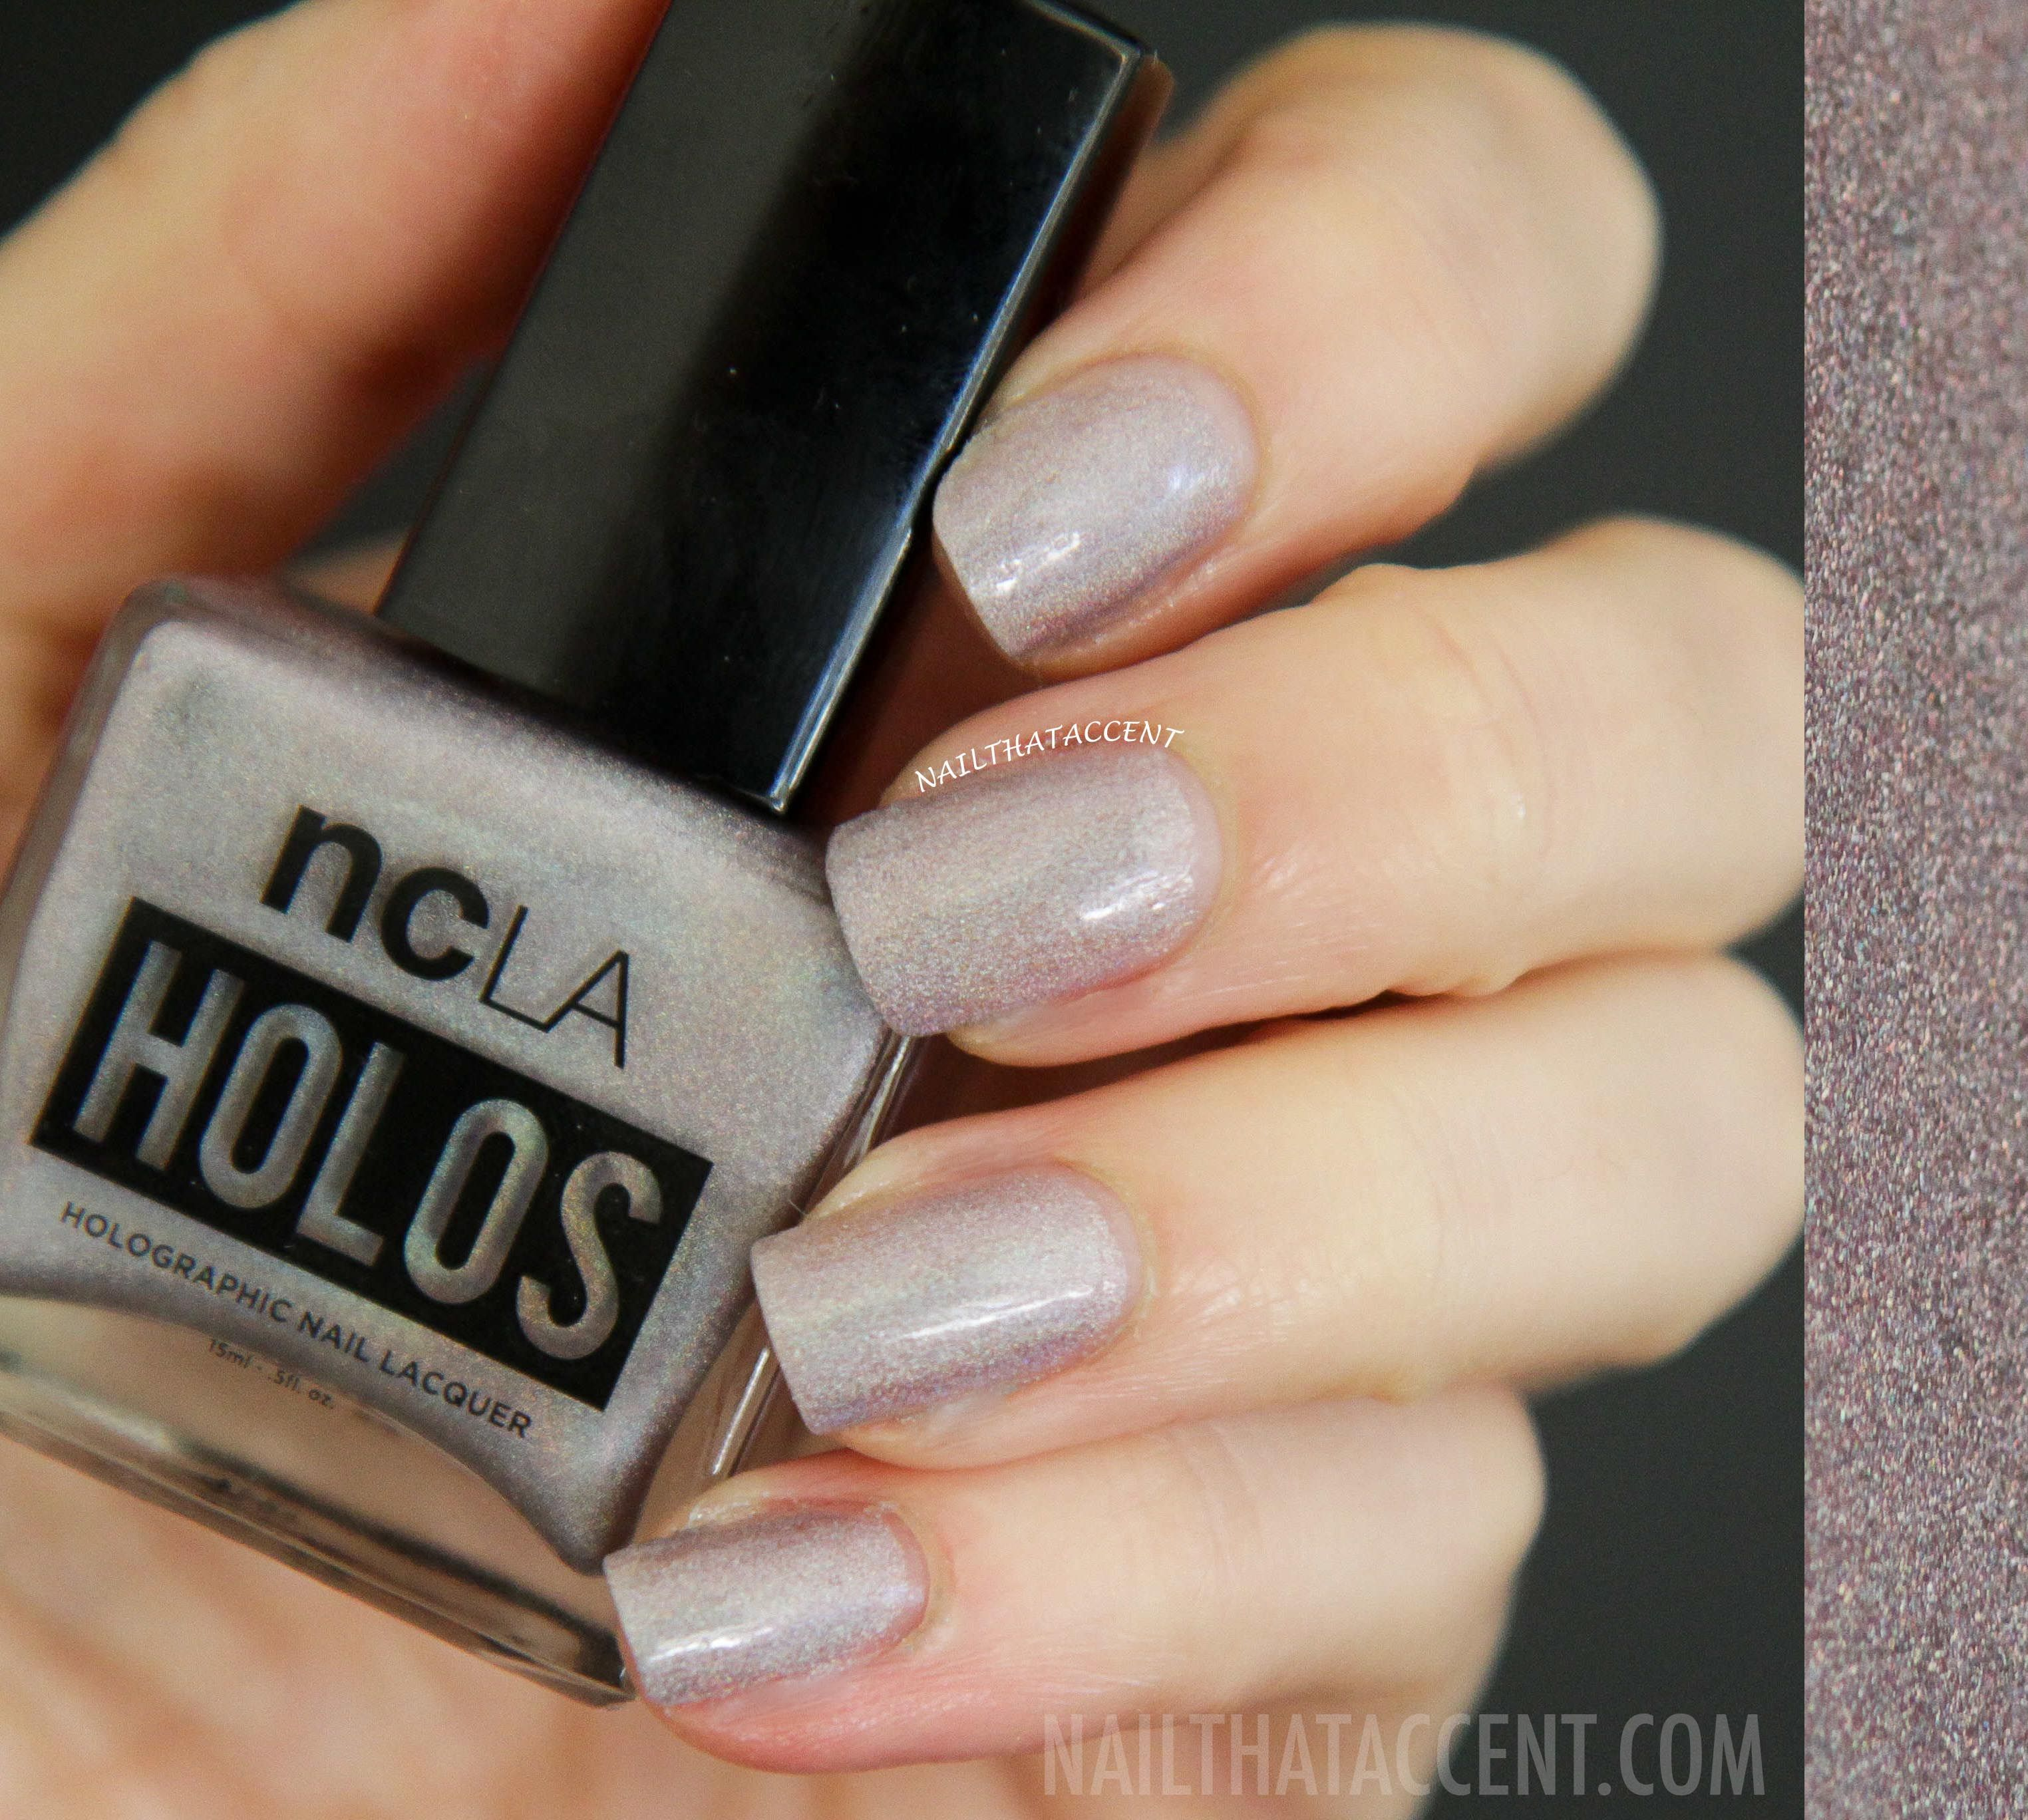 ncLA Vacation on Mars swatch | Nail Polish Swatches | Pinterest | Swatch